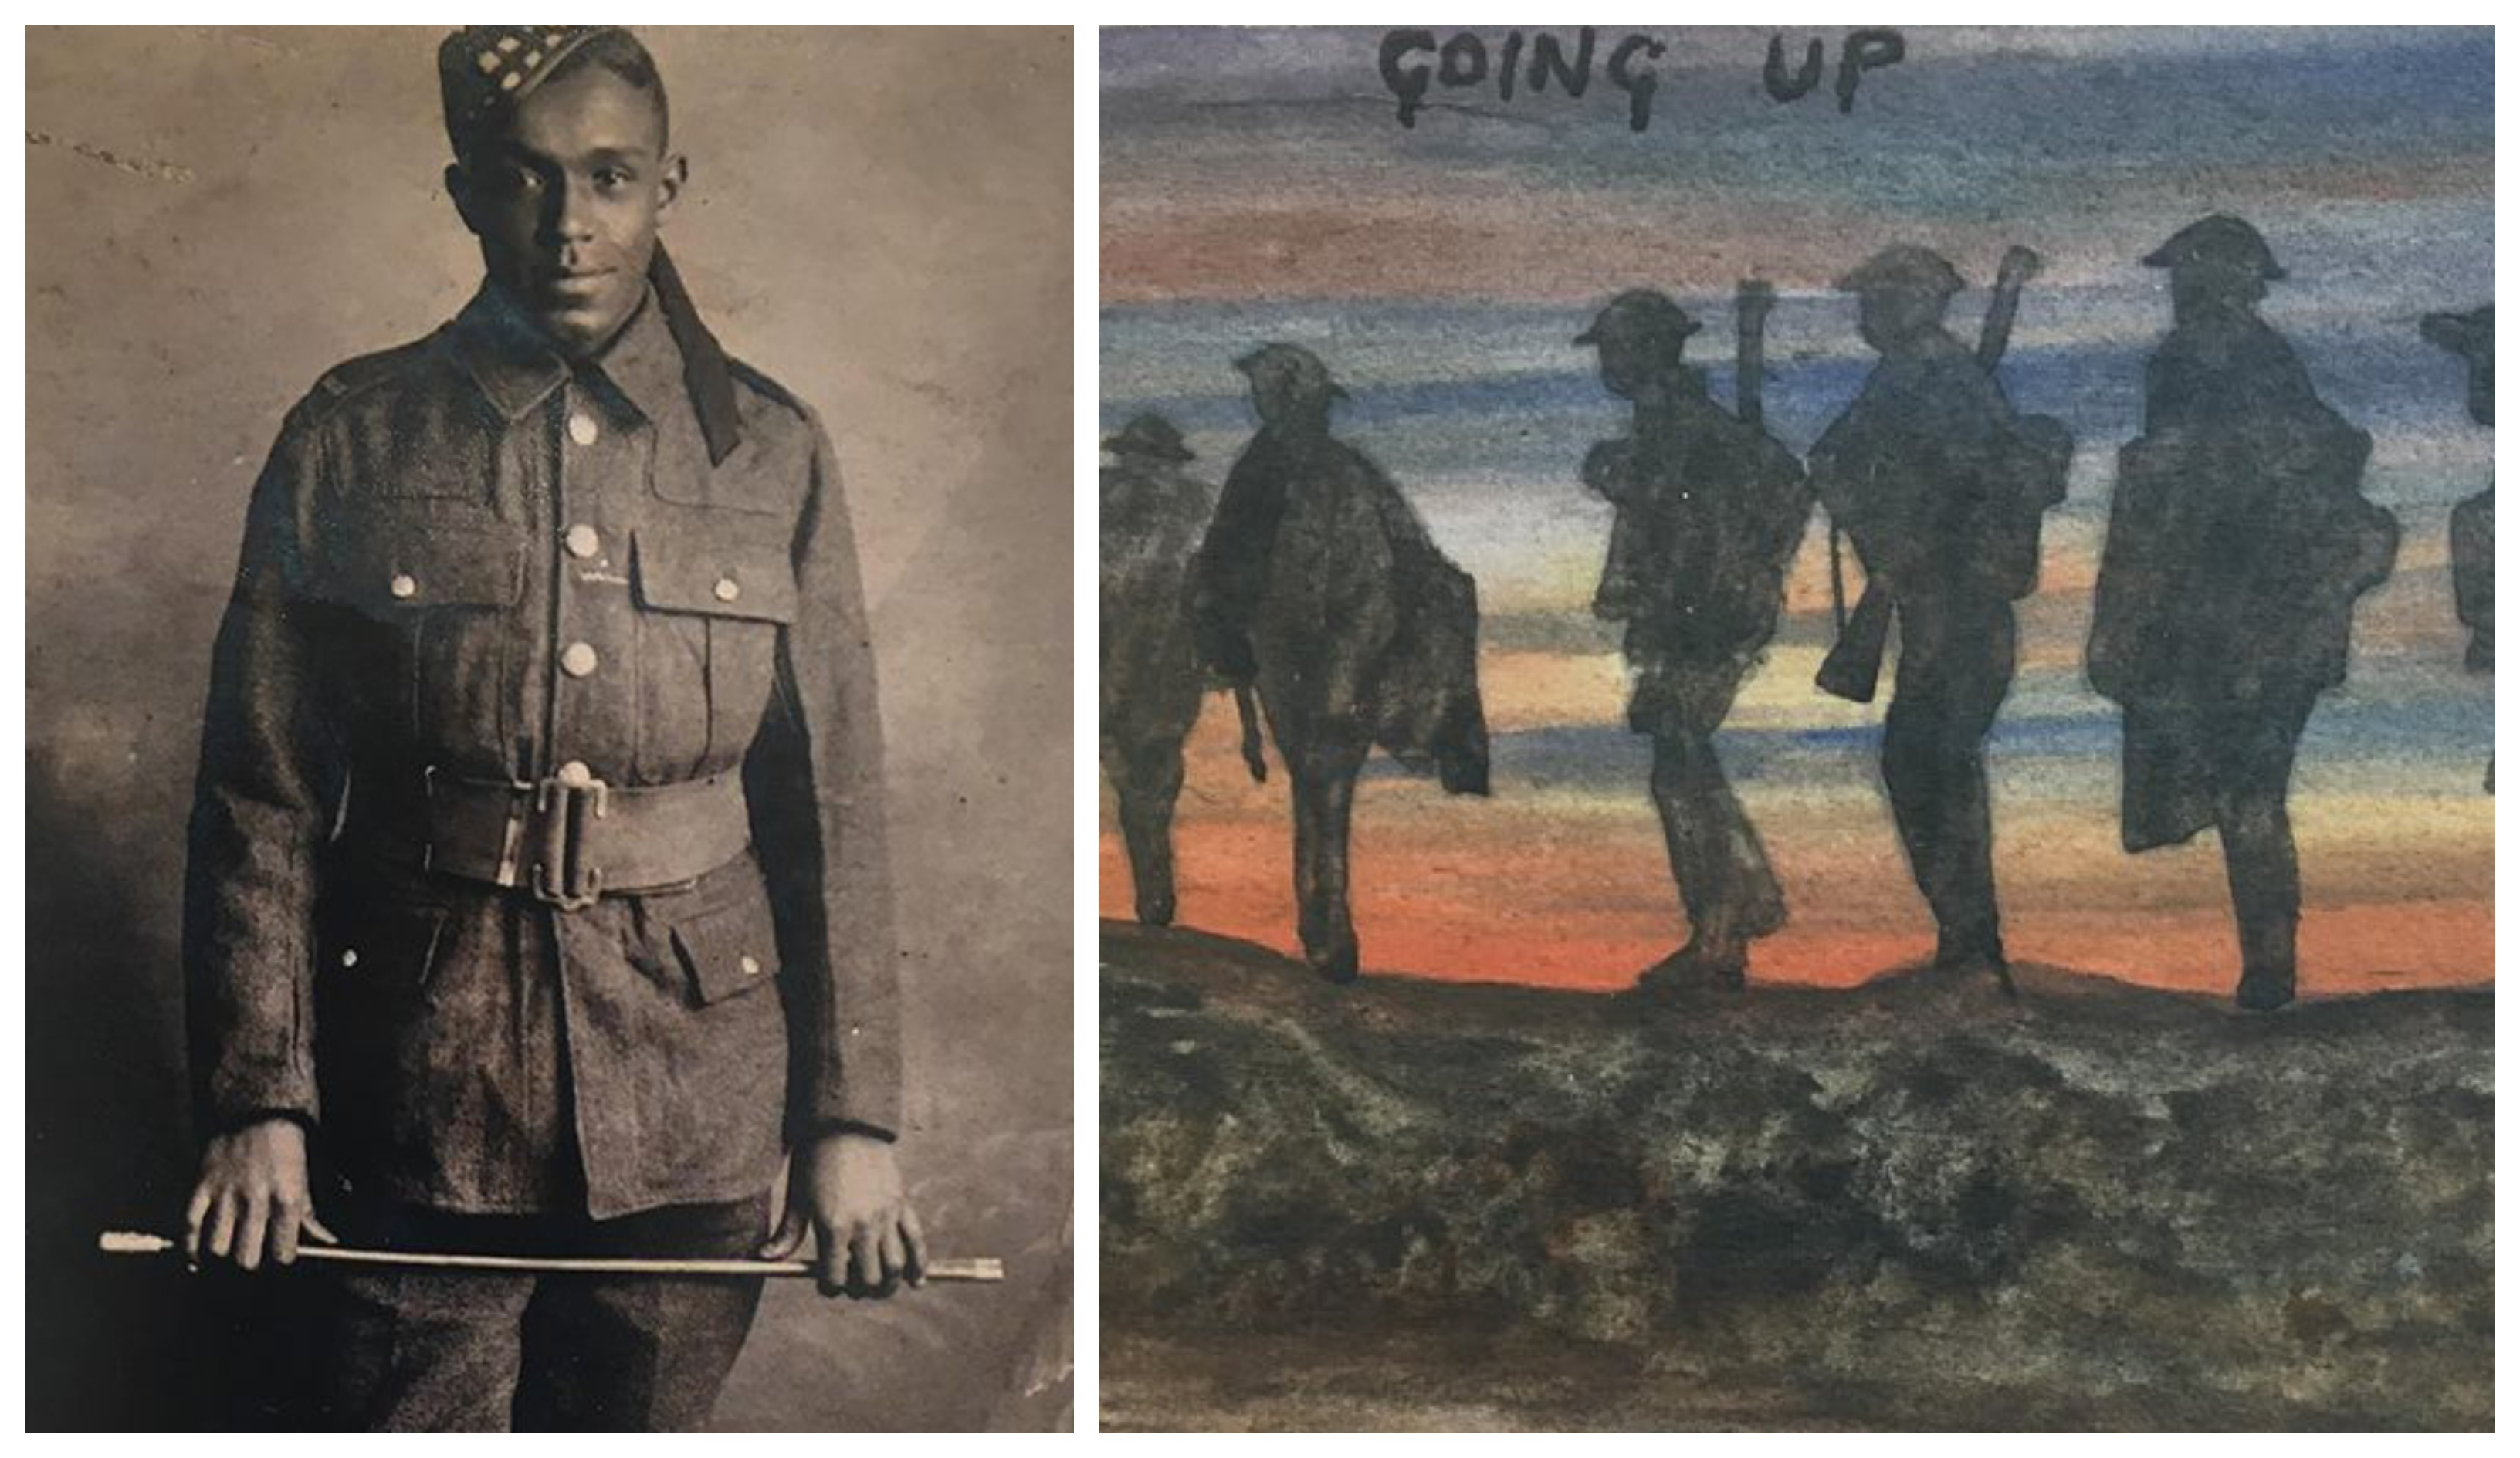 Arthur Roberts, left, and one of the frontline drawings taken from soldier's diary which was found years later in an attic